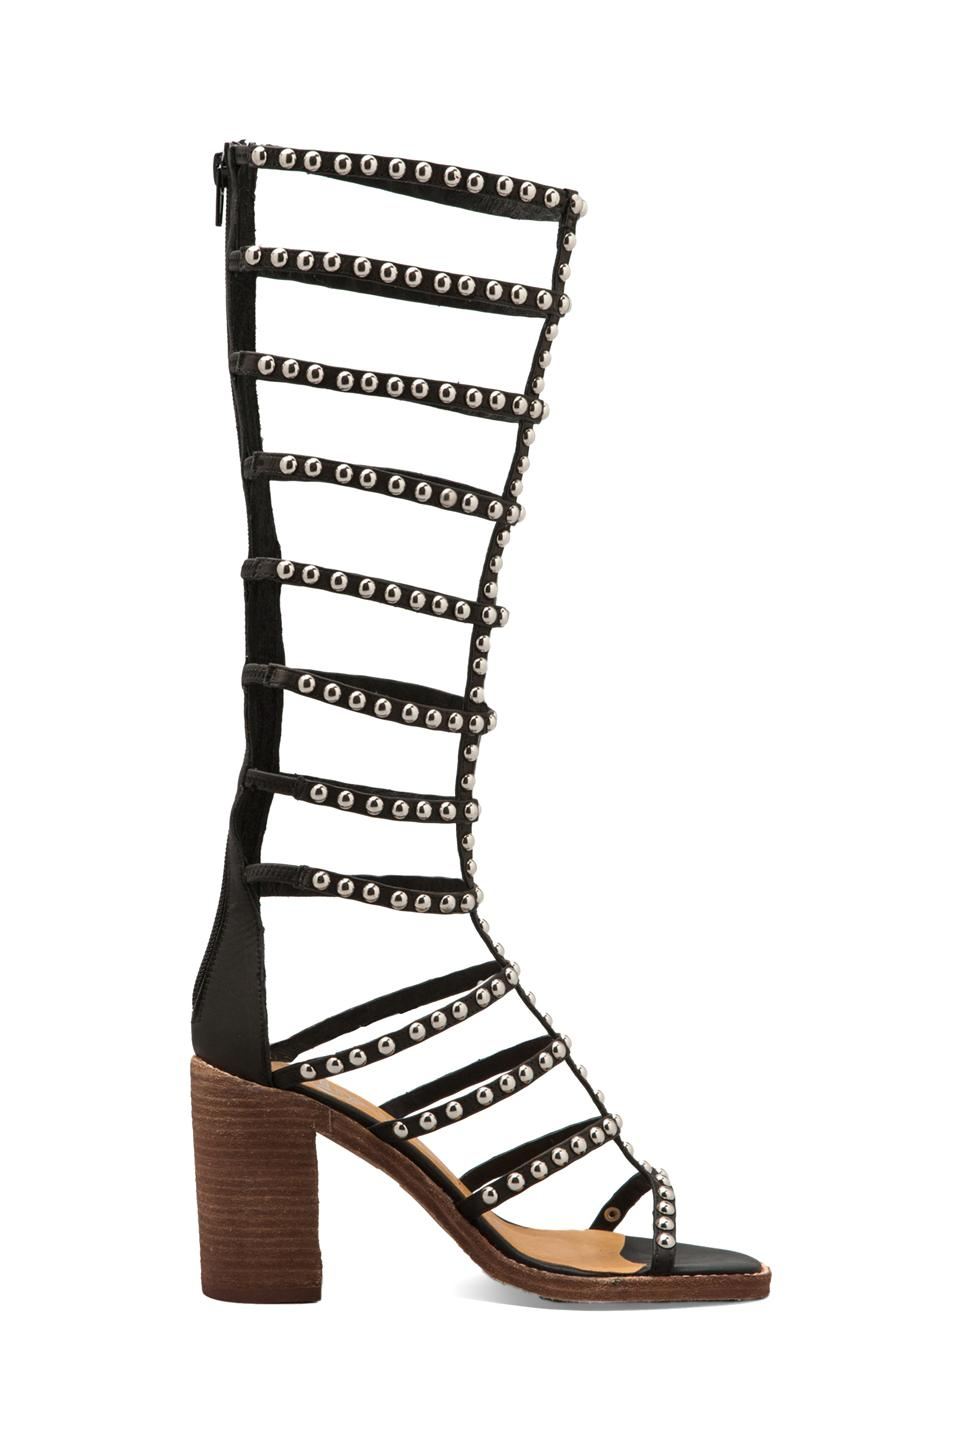 Jeffrey Campbell Lacage-St in Black Leather Silver